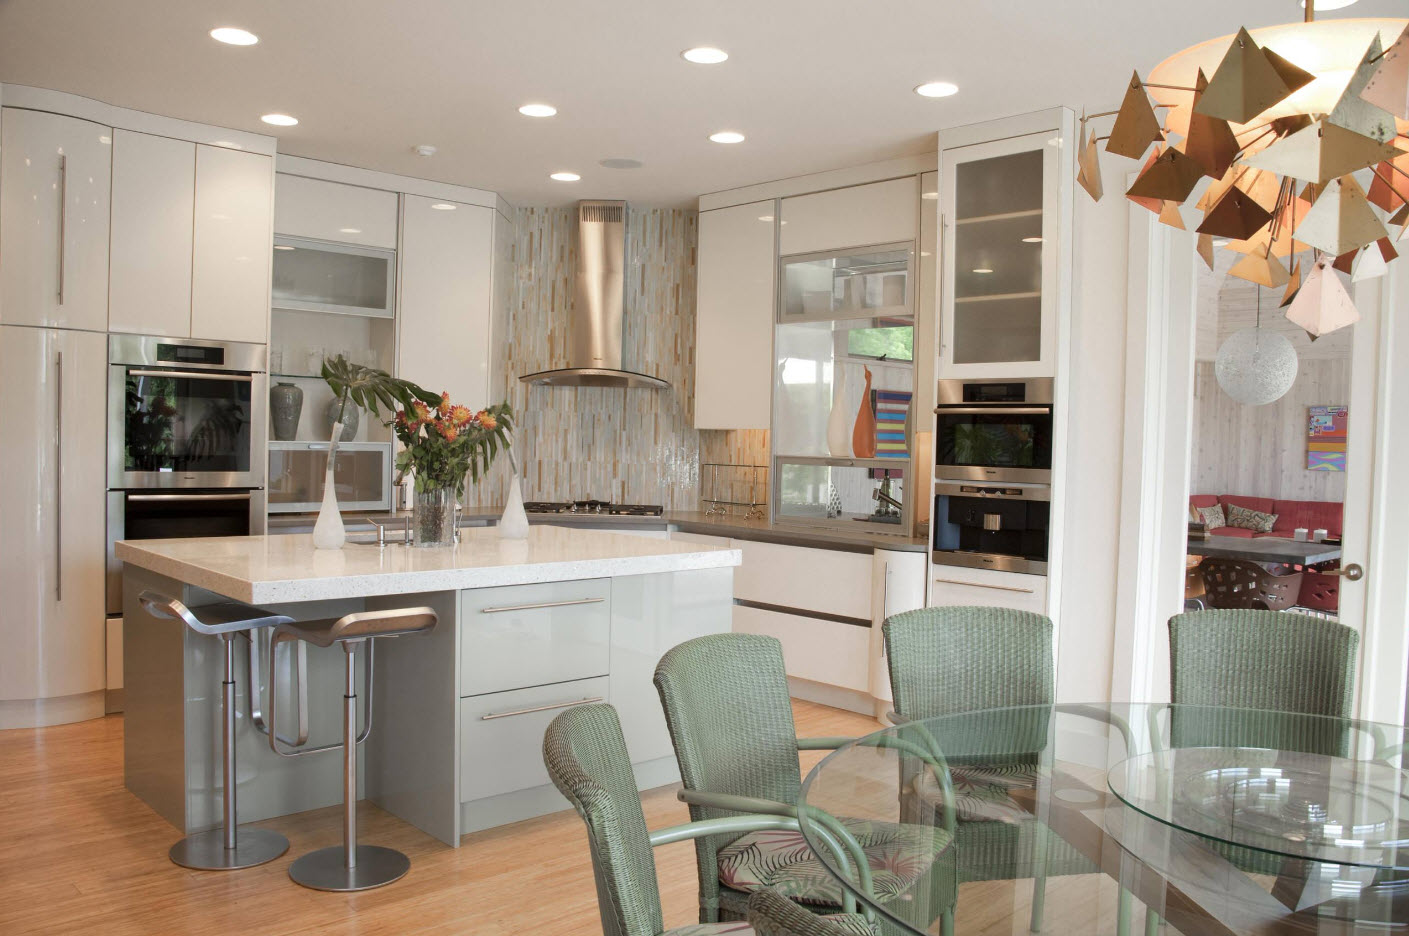 Modern kitchen set with combined white and pale olive bottom